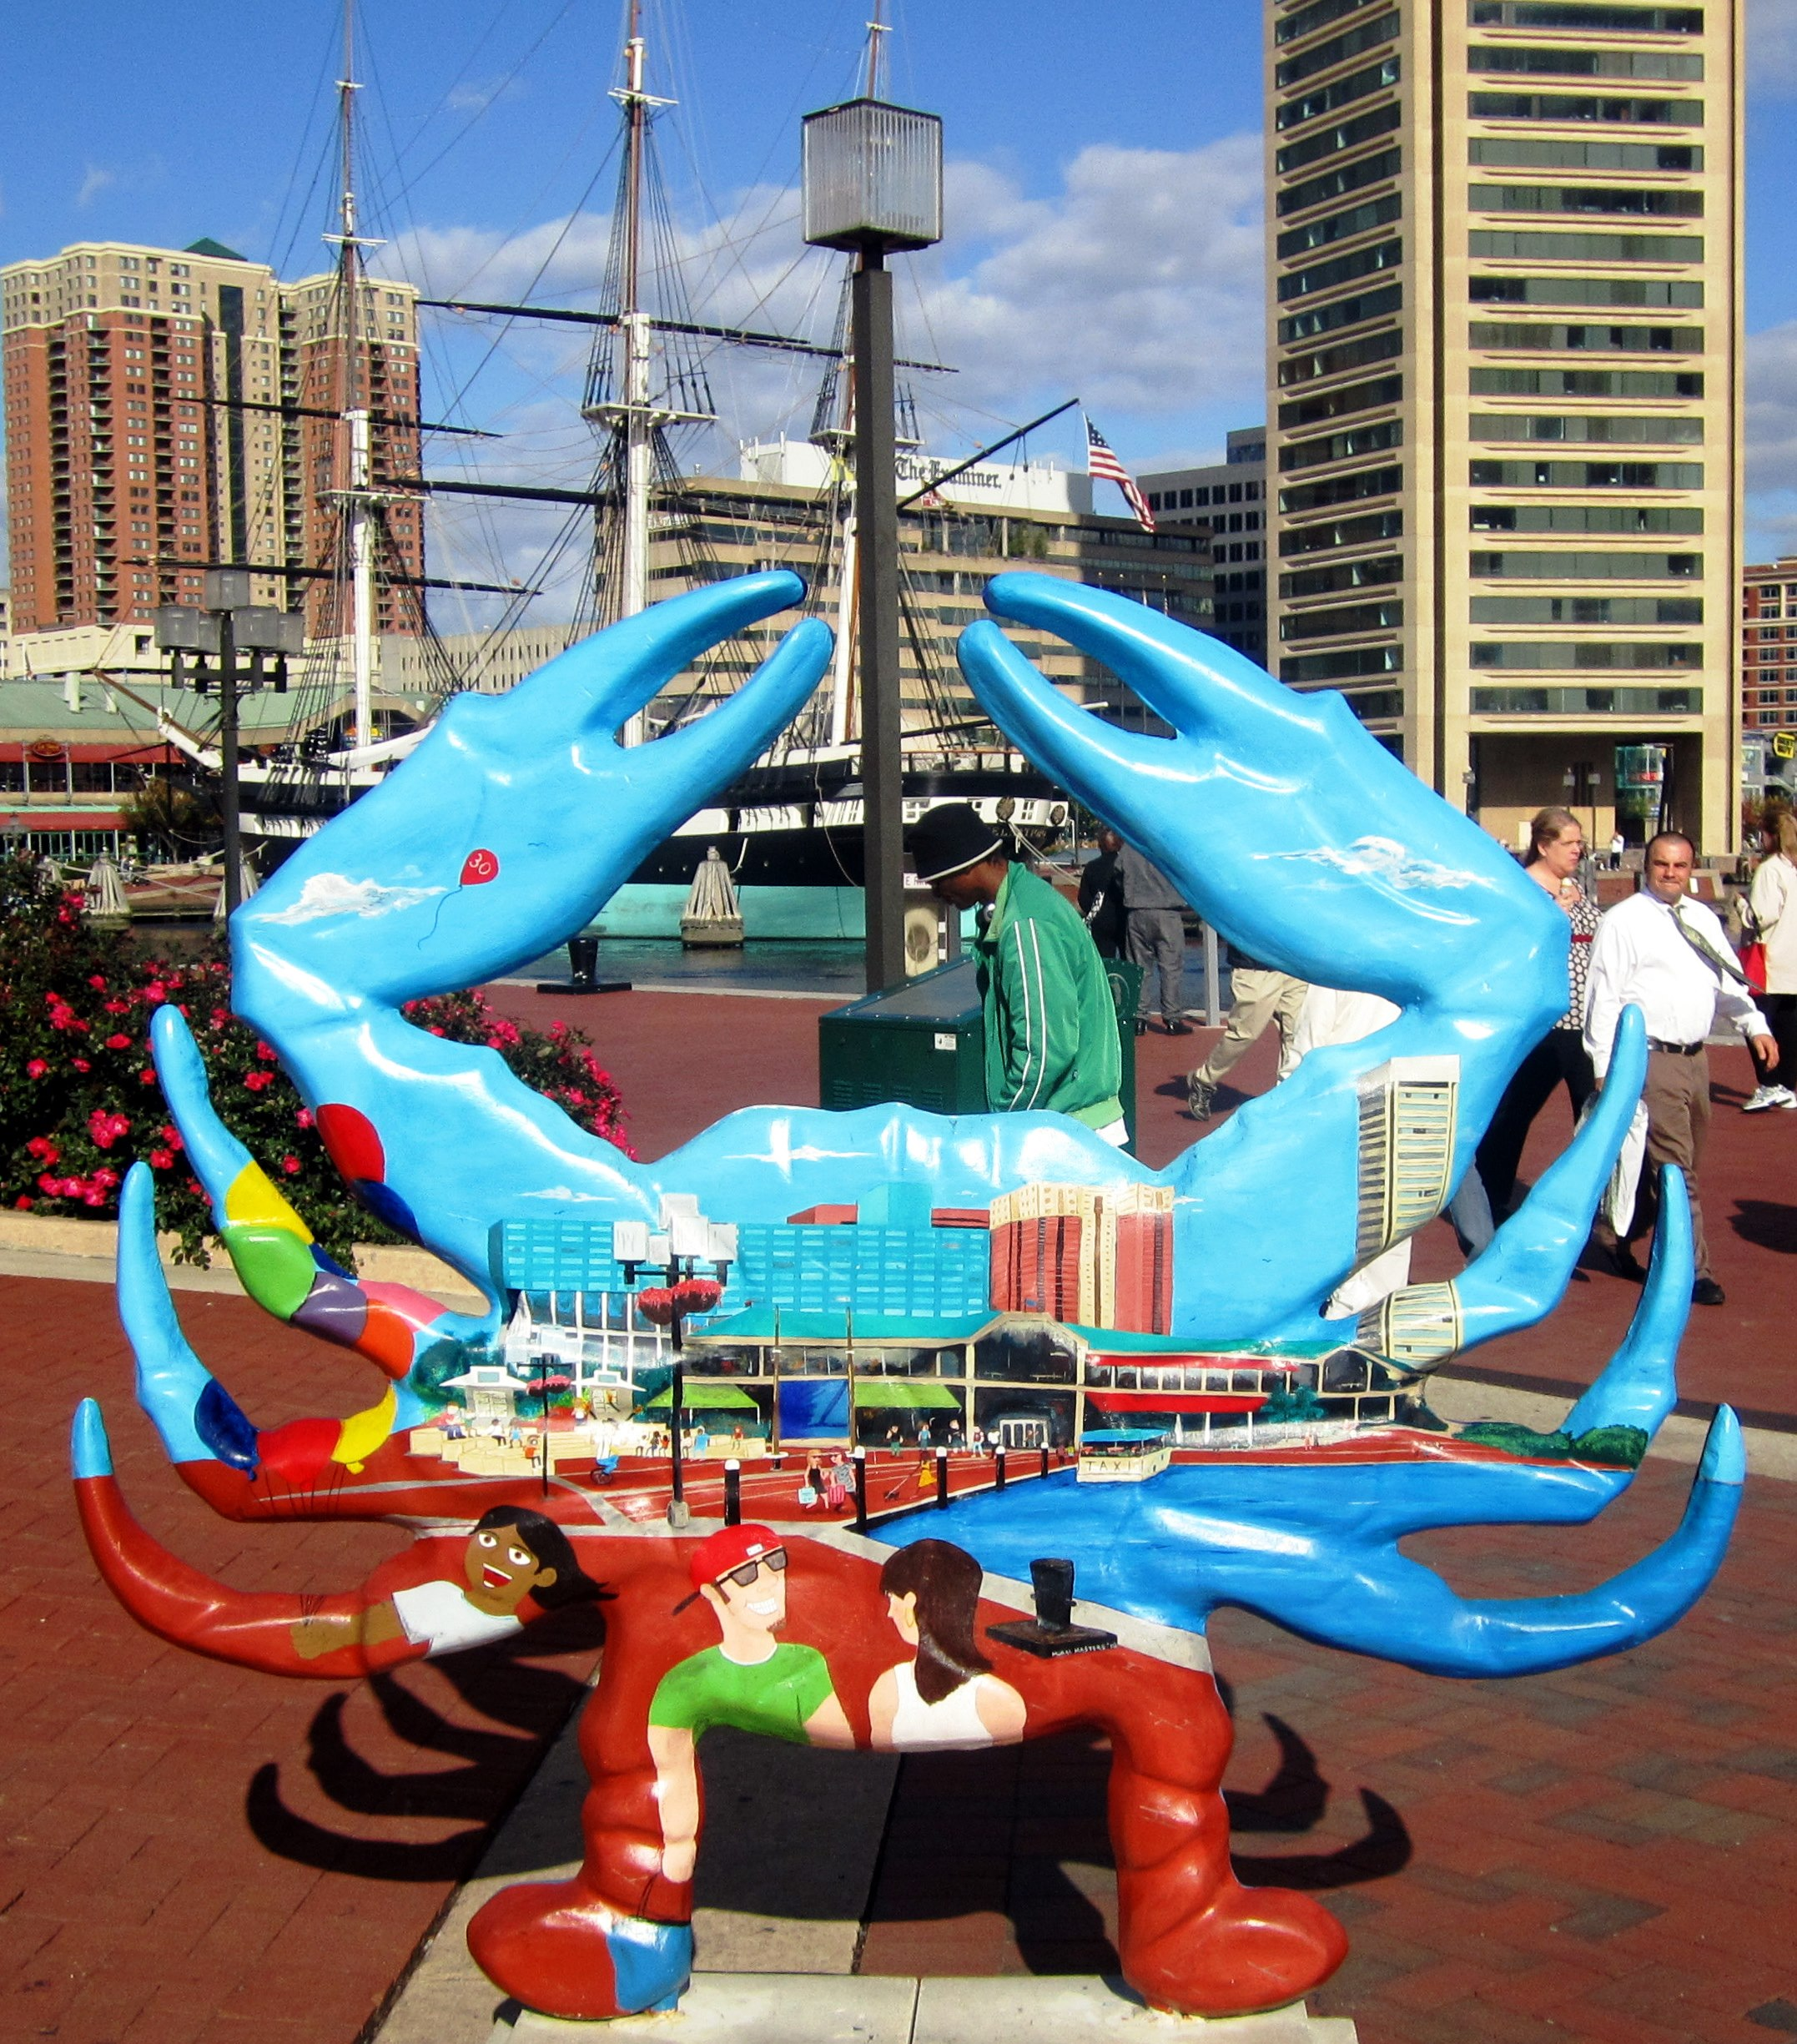 Summer Activities in Baltimore - Harborplace Amphitheater